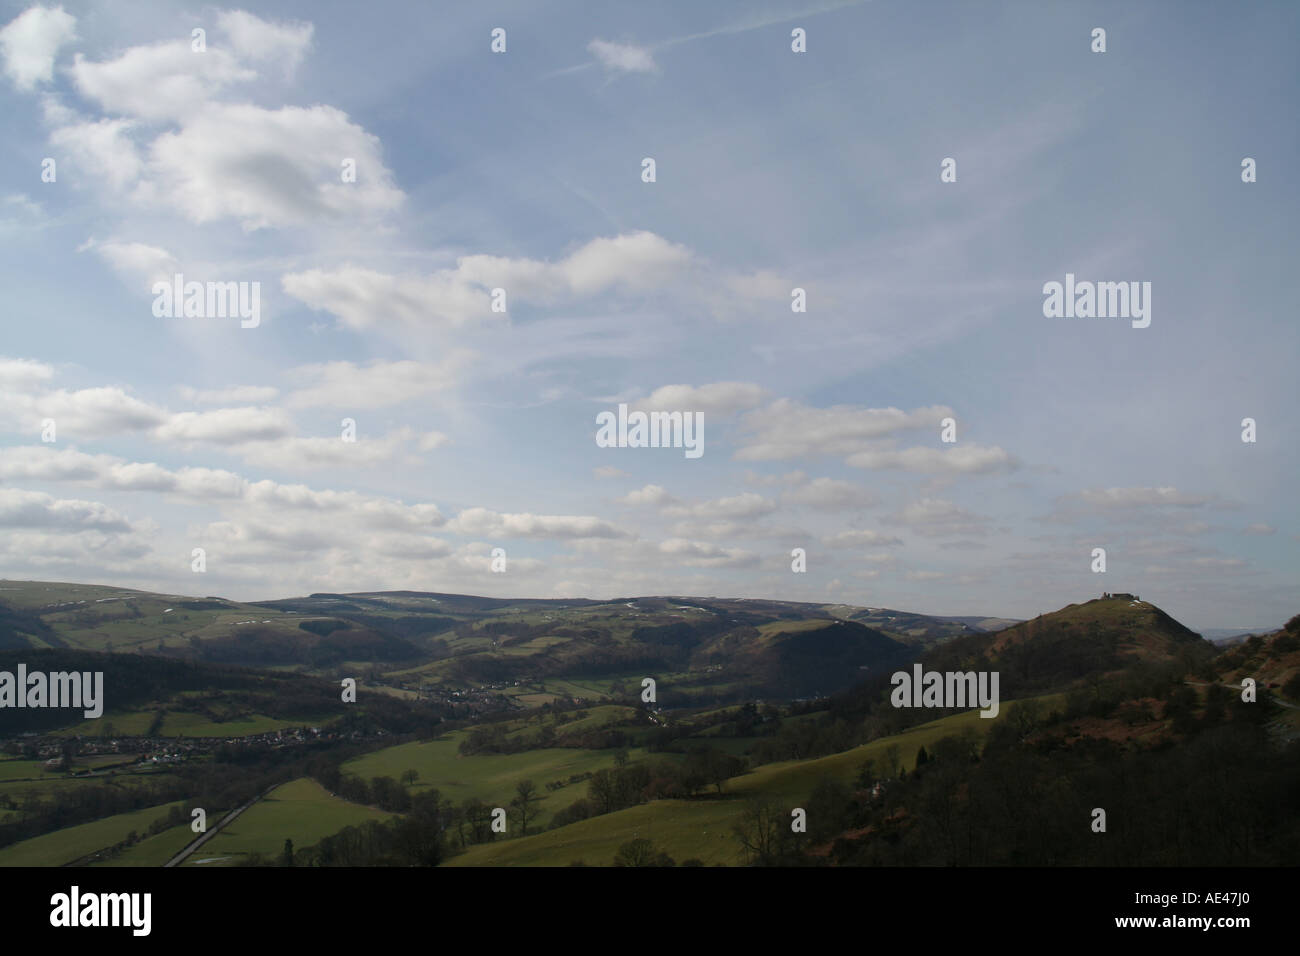 The Dee Valley and Castell Dinas Bran, Llangollen, Wales - Stock Image